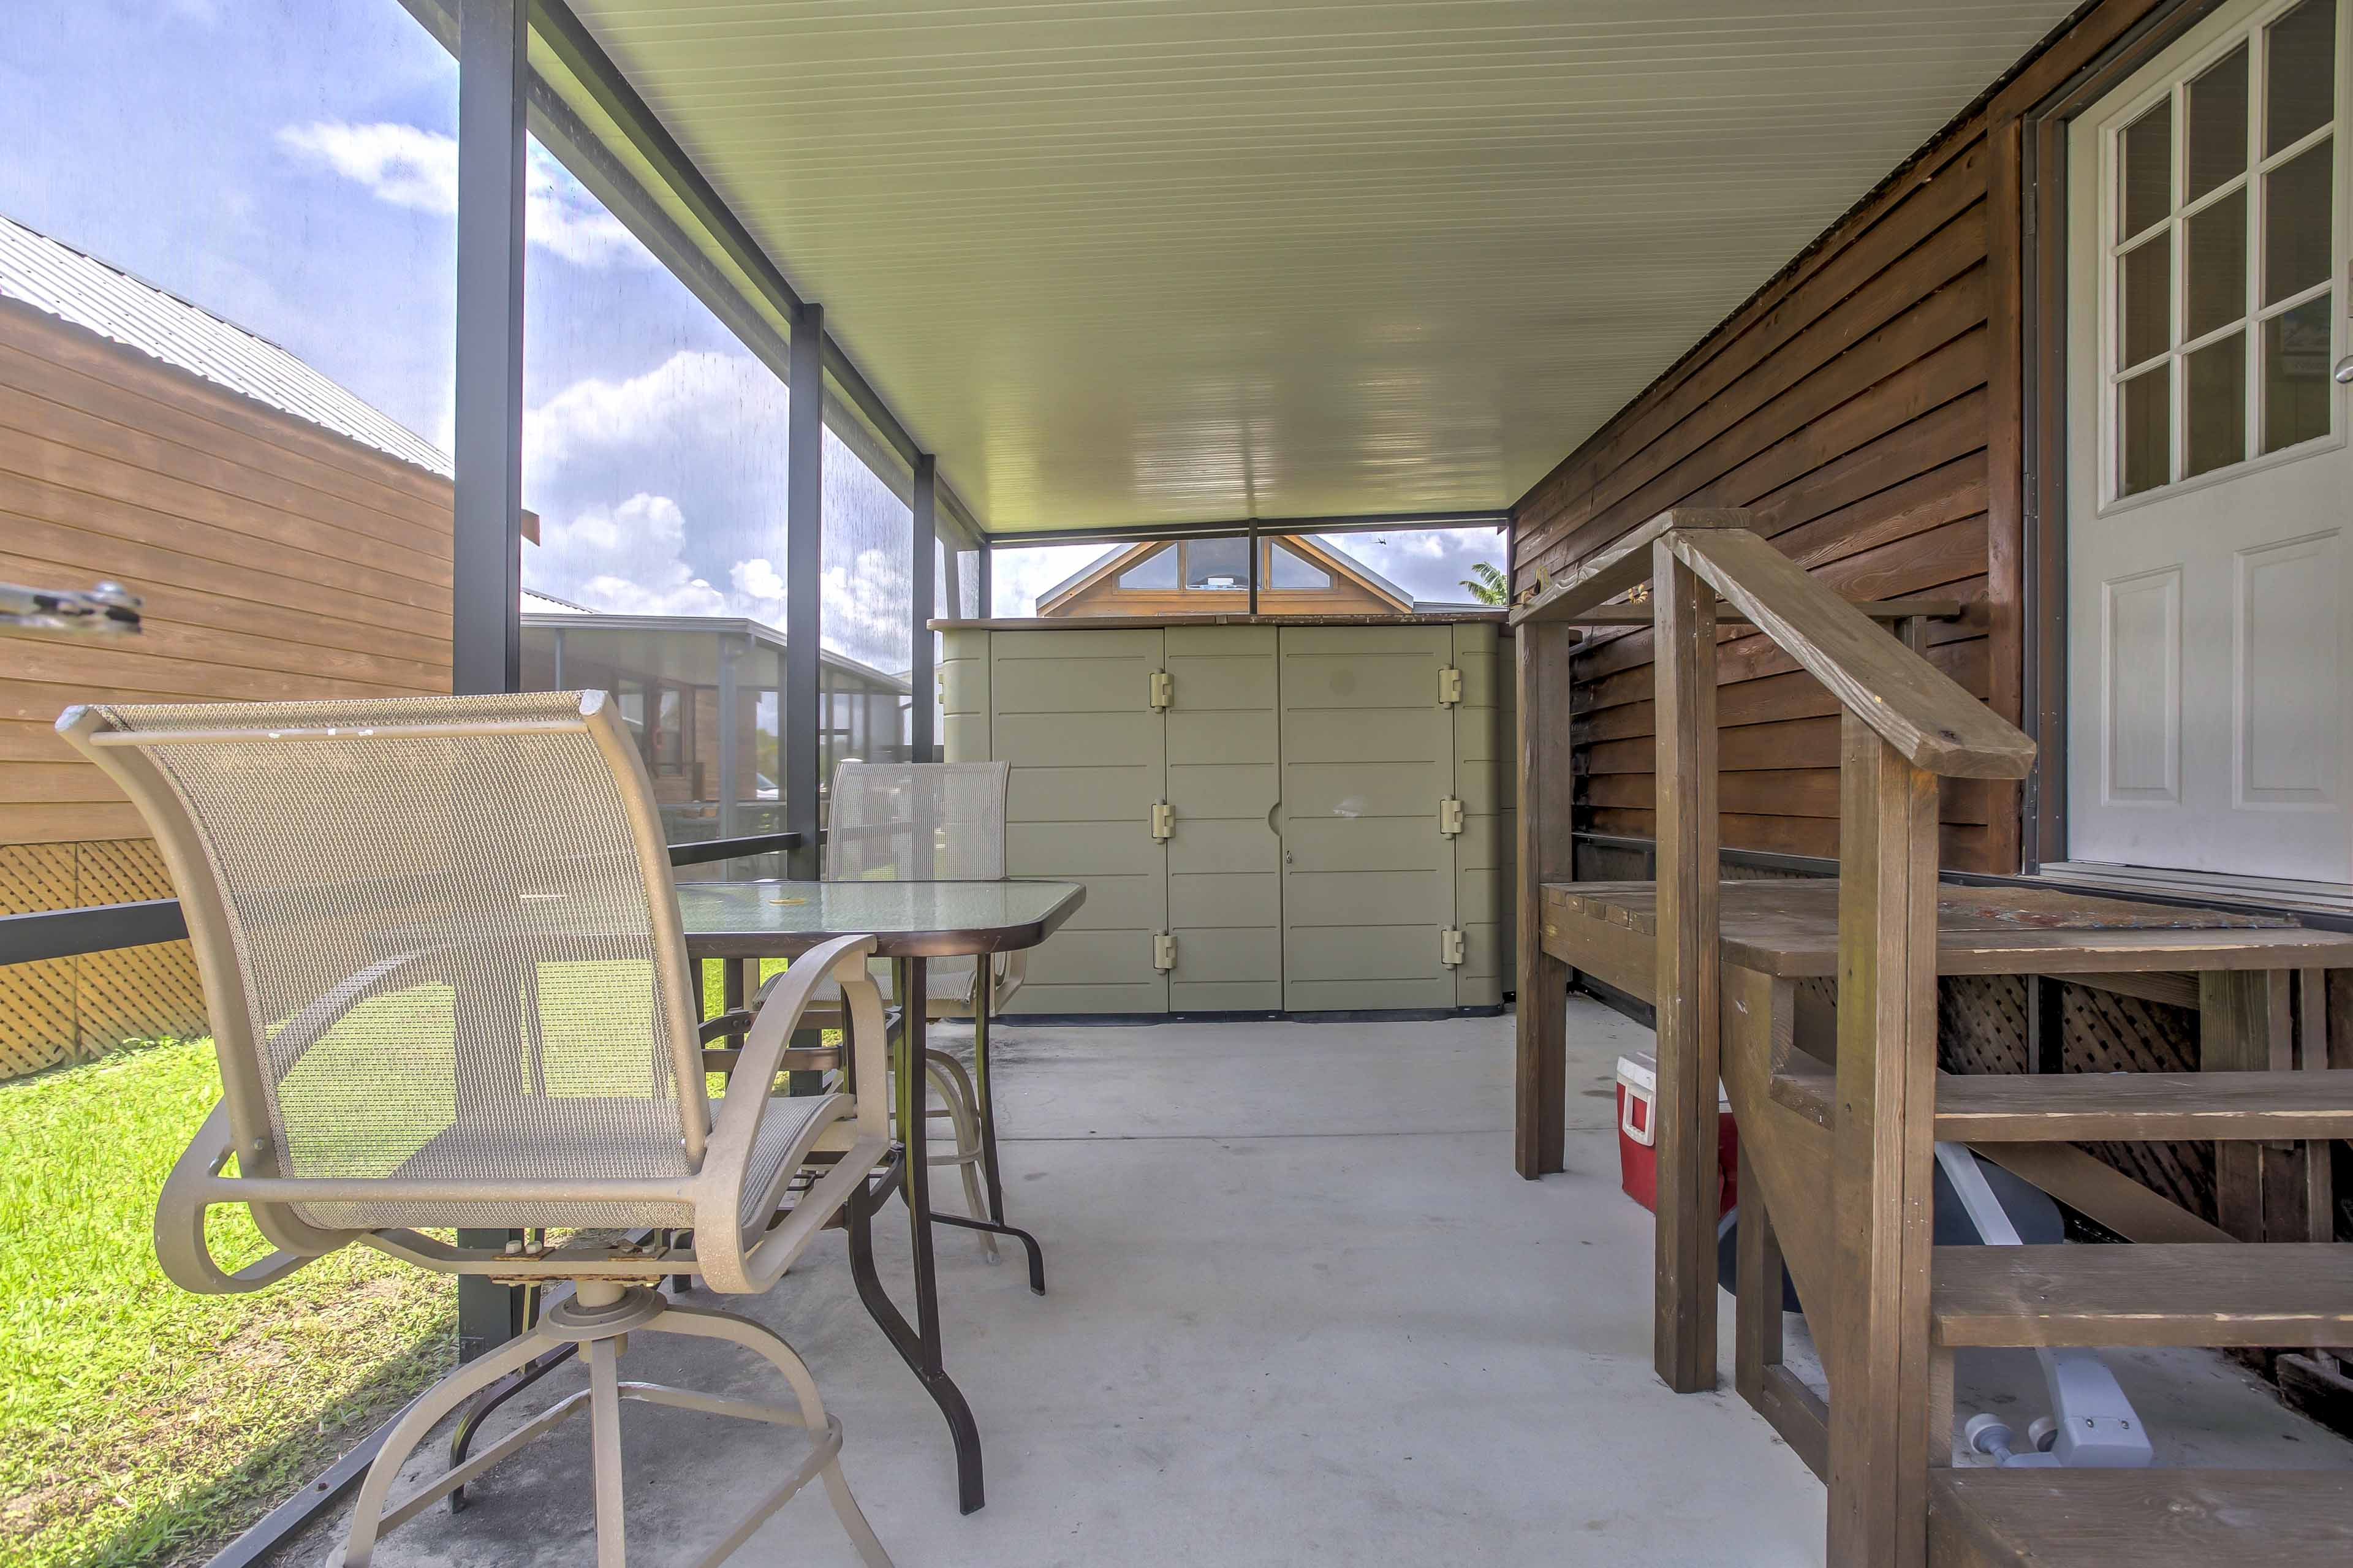 Escape the heat while still enjoying the sunshine from the screened-in porch.